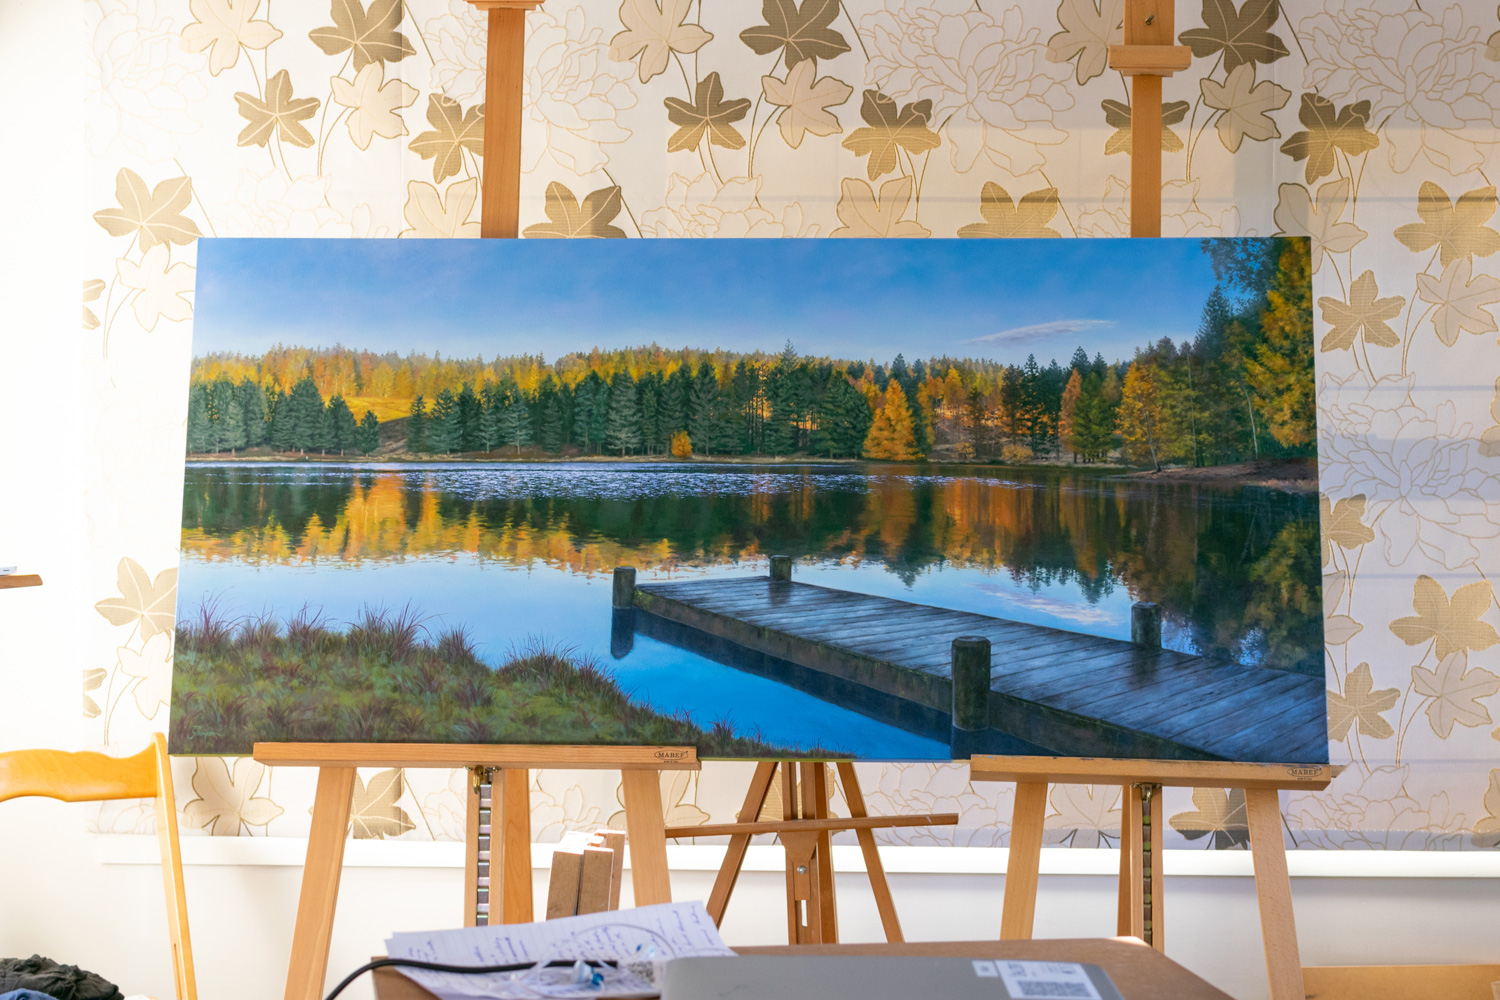 'Morning Light on Coalpit Dam' 1620x760mm, Oil on canvas, 2019.